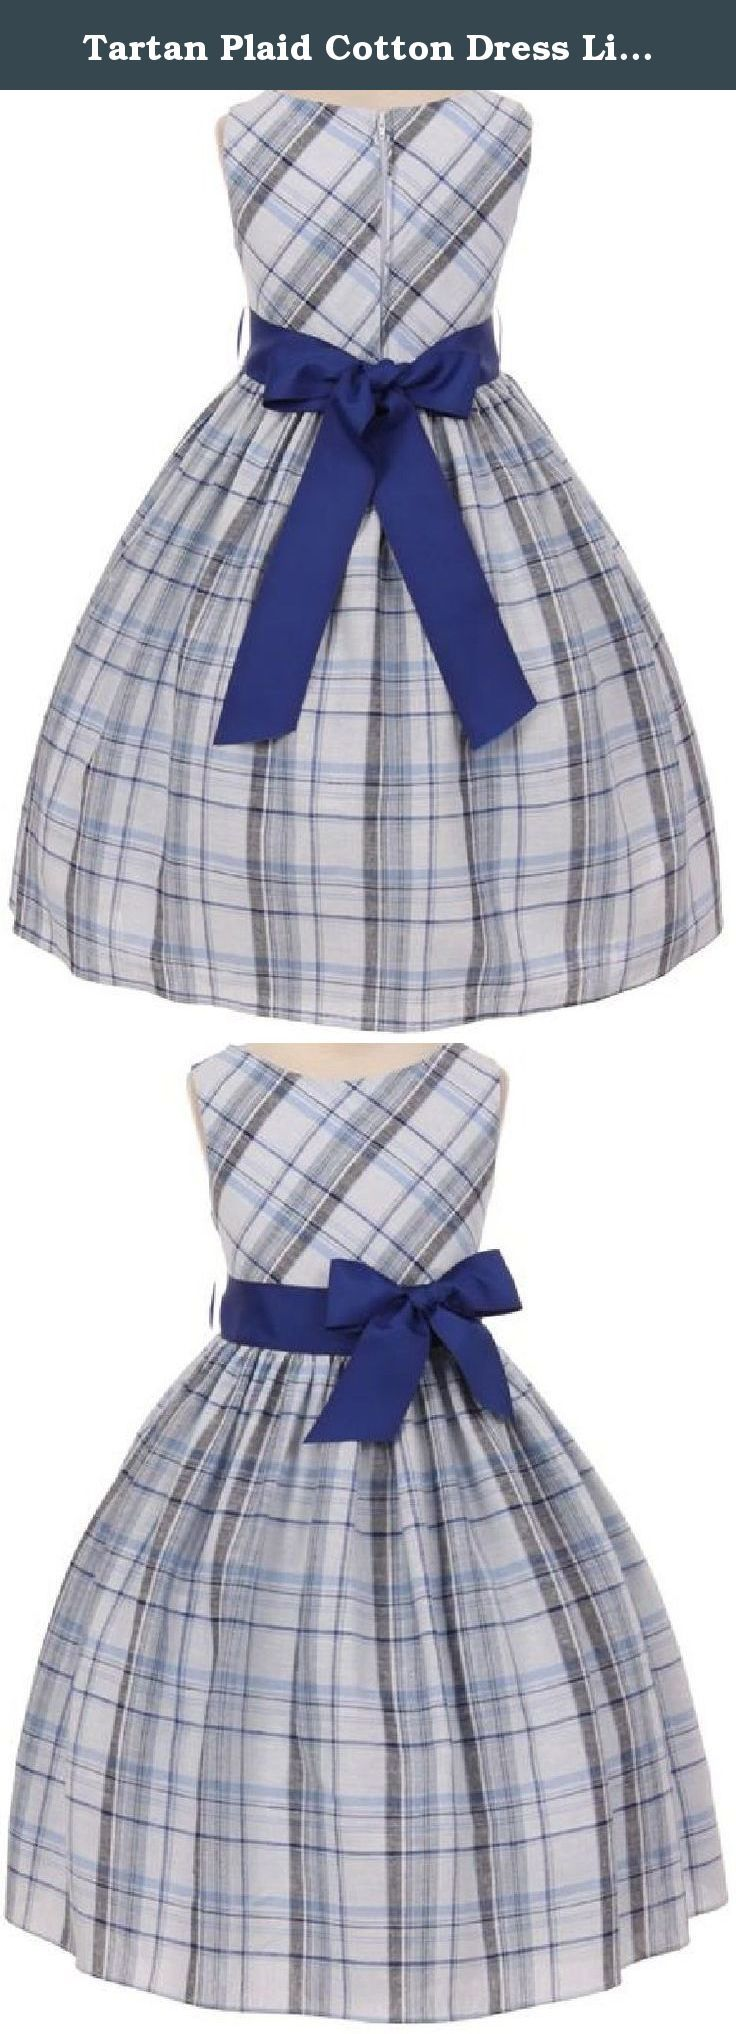 Tartan Plaid Cotton Dress Little Girl Special Occasion Dress Royal 6. Classic tartan plaid cotton dress lined with poly-cotton and finished with a thick ribbon belt to tie in back. The bow in front is pinned and detachable.